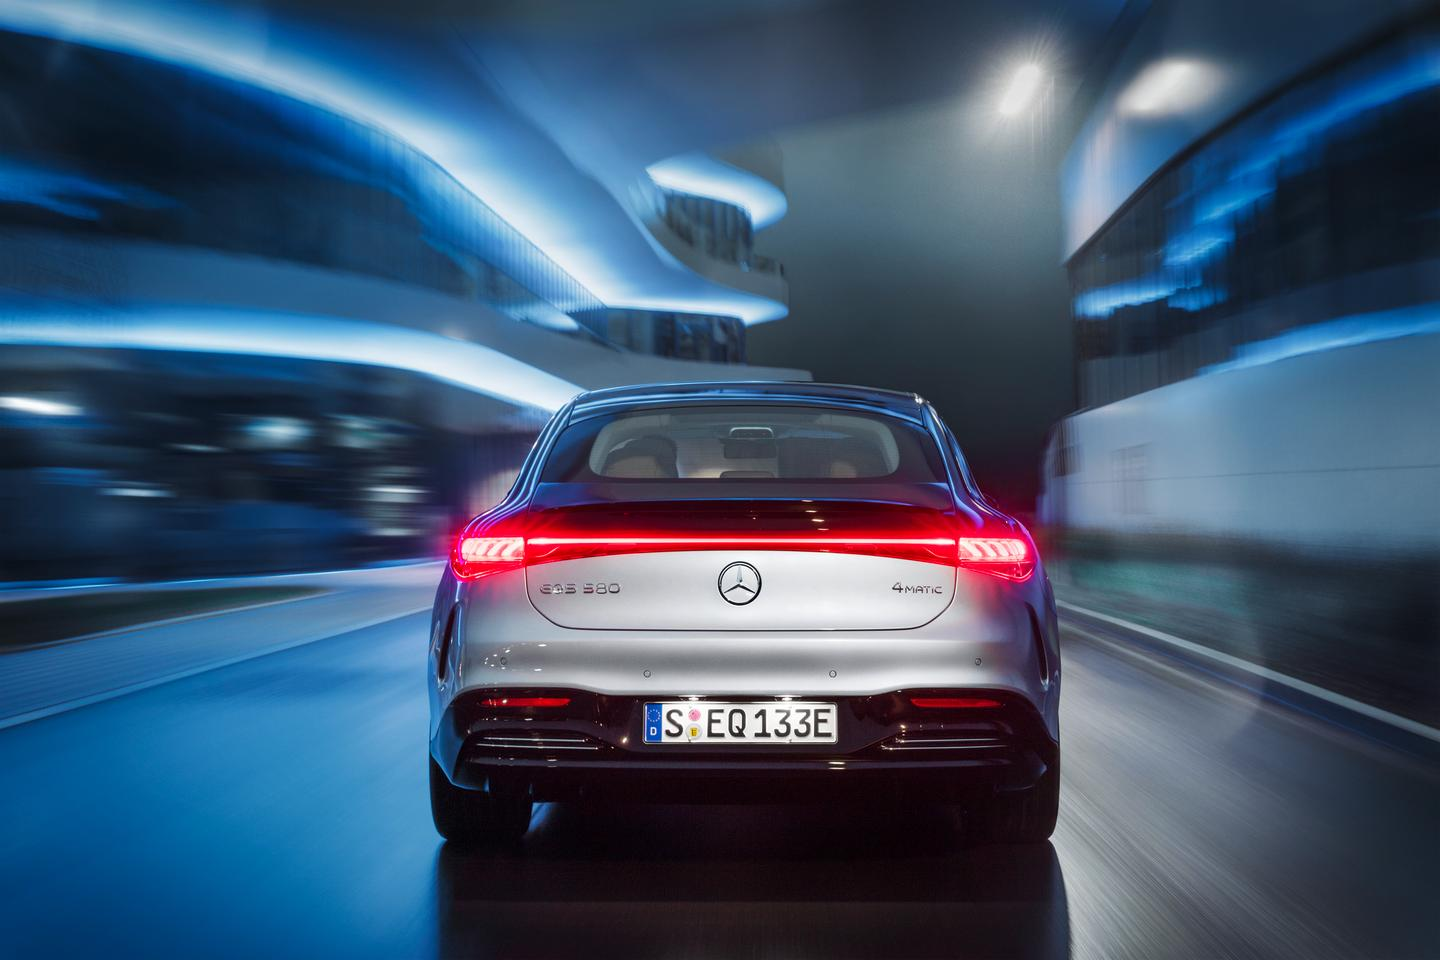 Mercedes debuts the highly anticipated EQS flagship electric luxury sedan